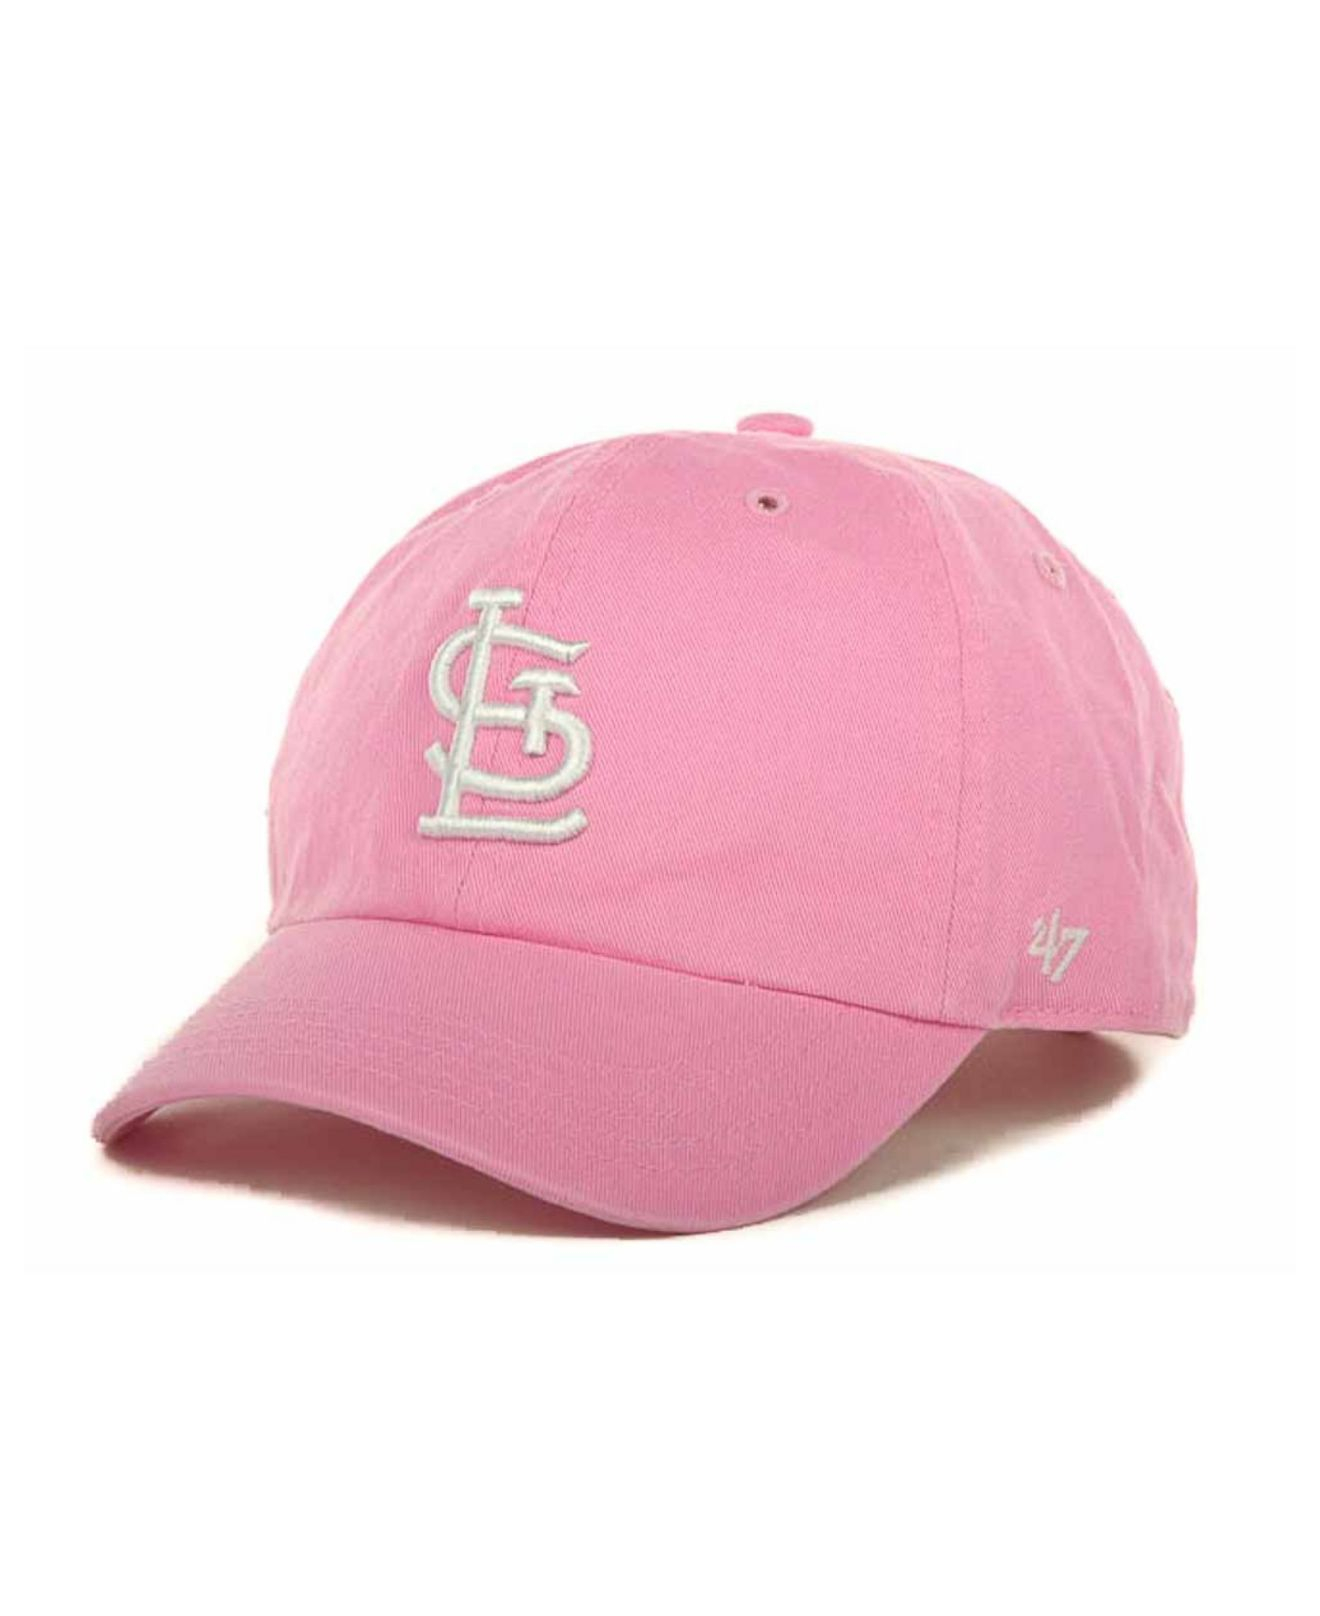 online store 8b256 23e55 ... shopping lyst 47 brand kids st. louis cardinals clean up cap in pink  for men